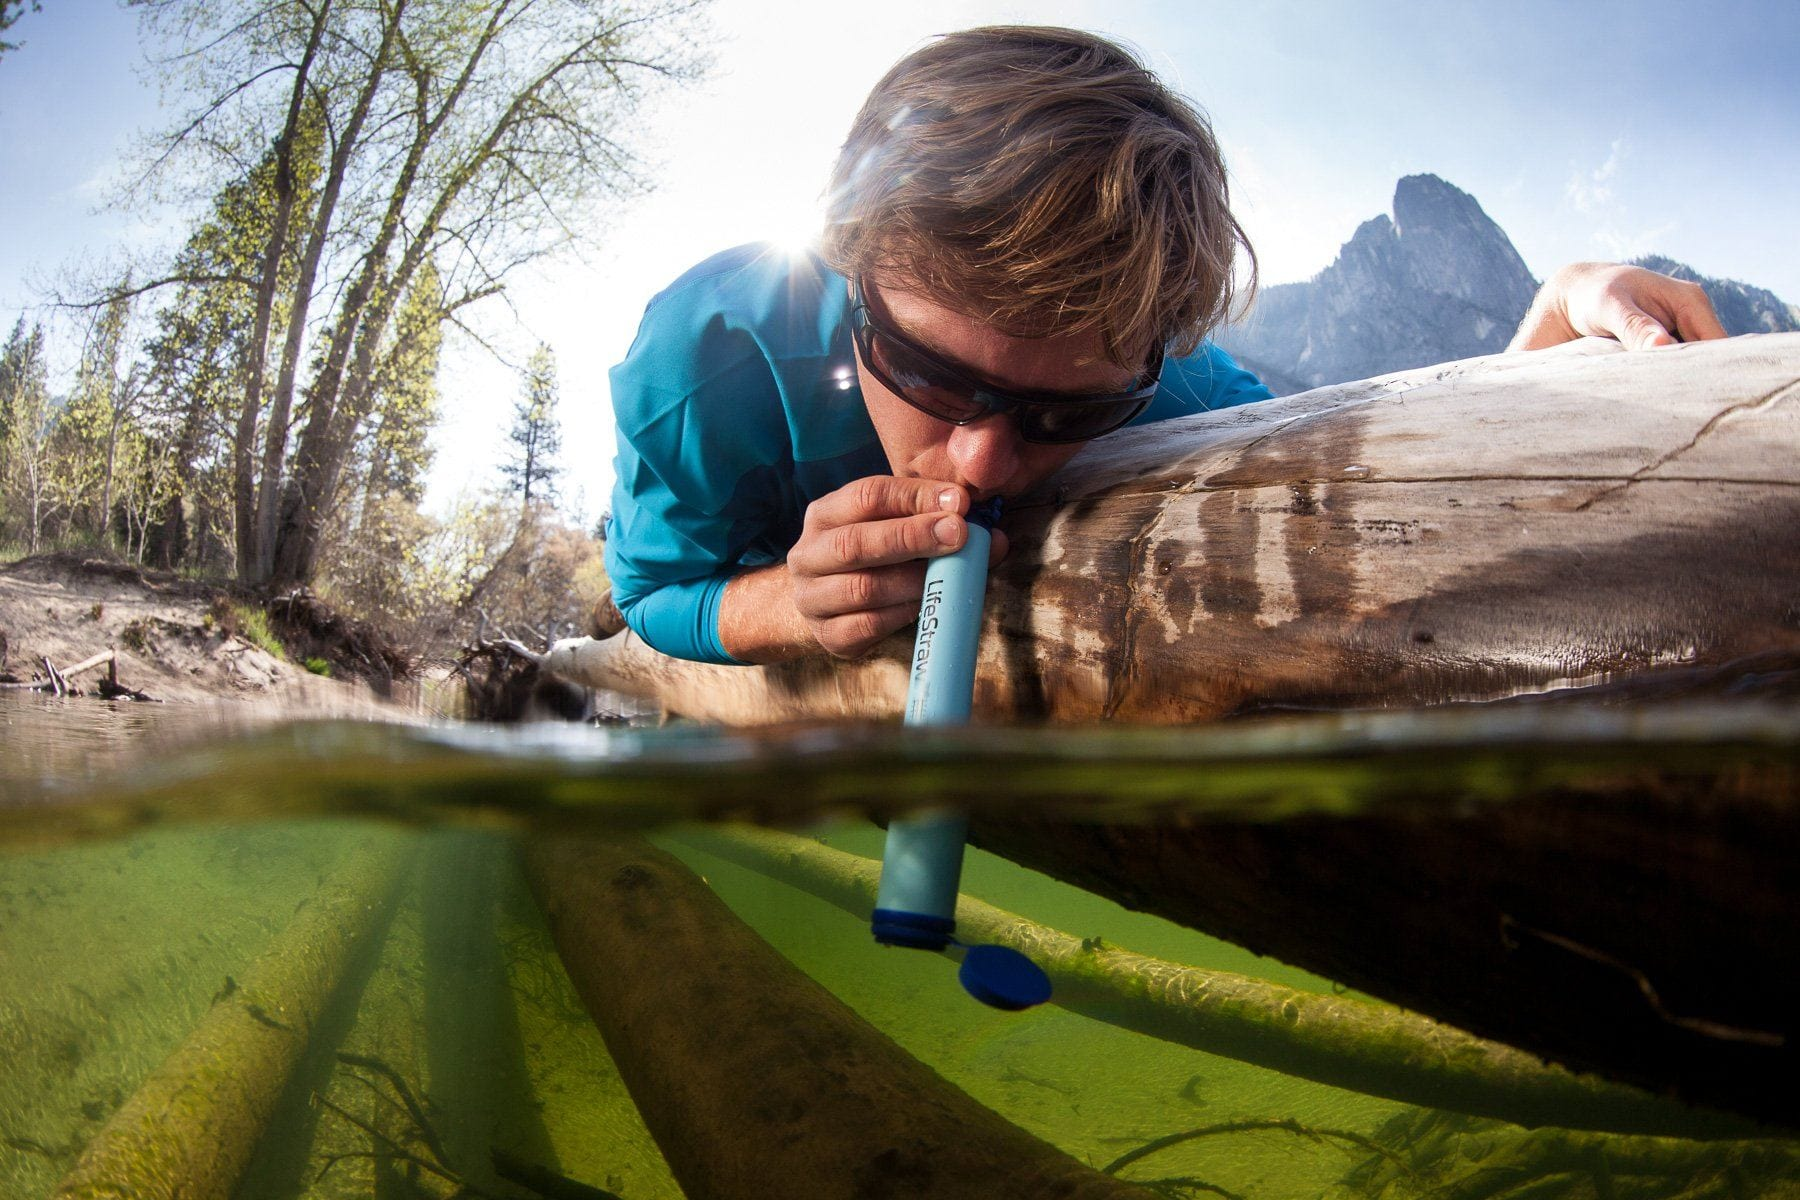 Using the LifeStraw Personal Survival Water Filter and Emergency Water Filter in a local river